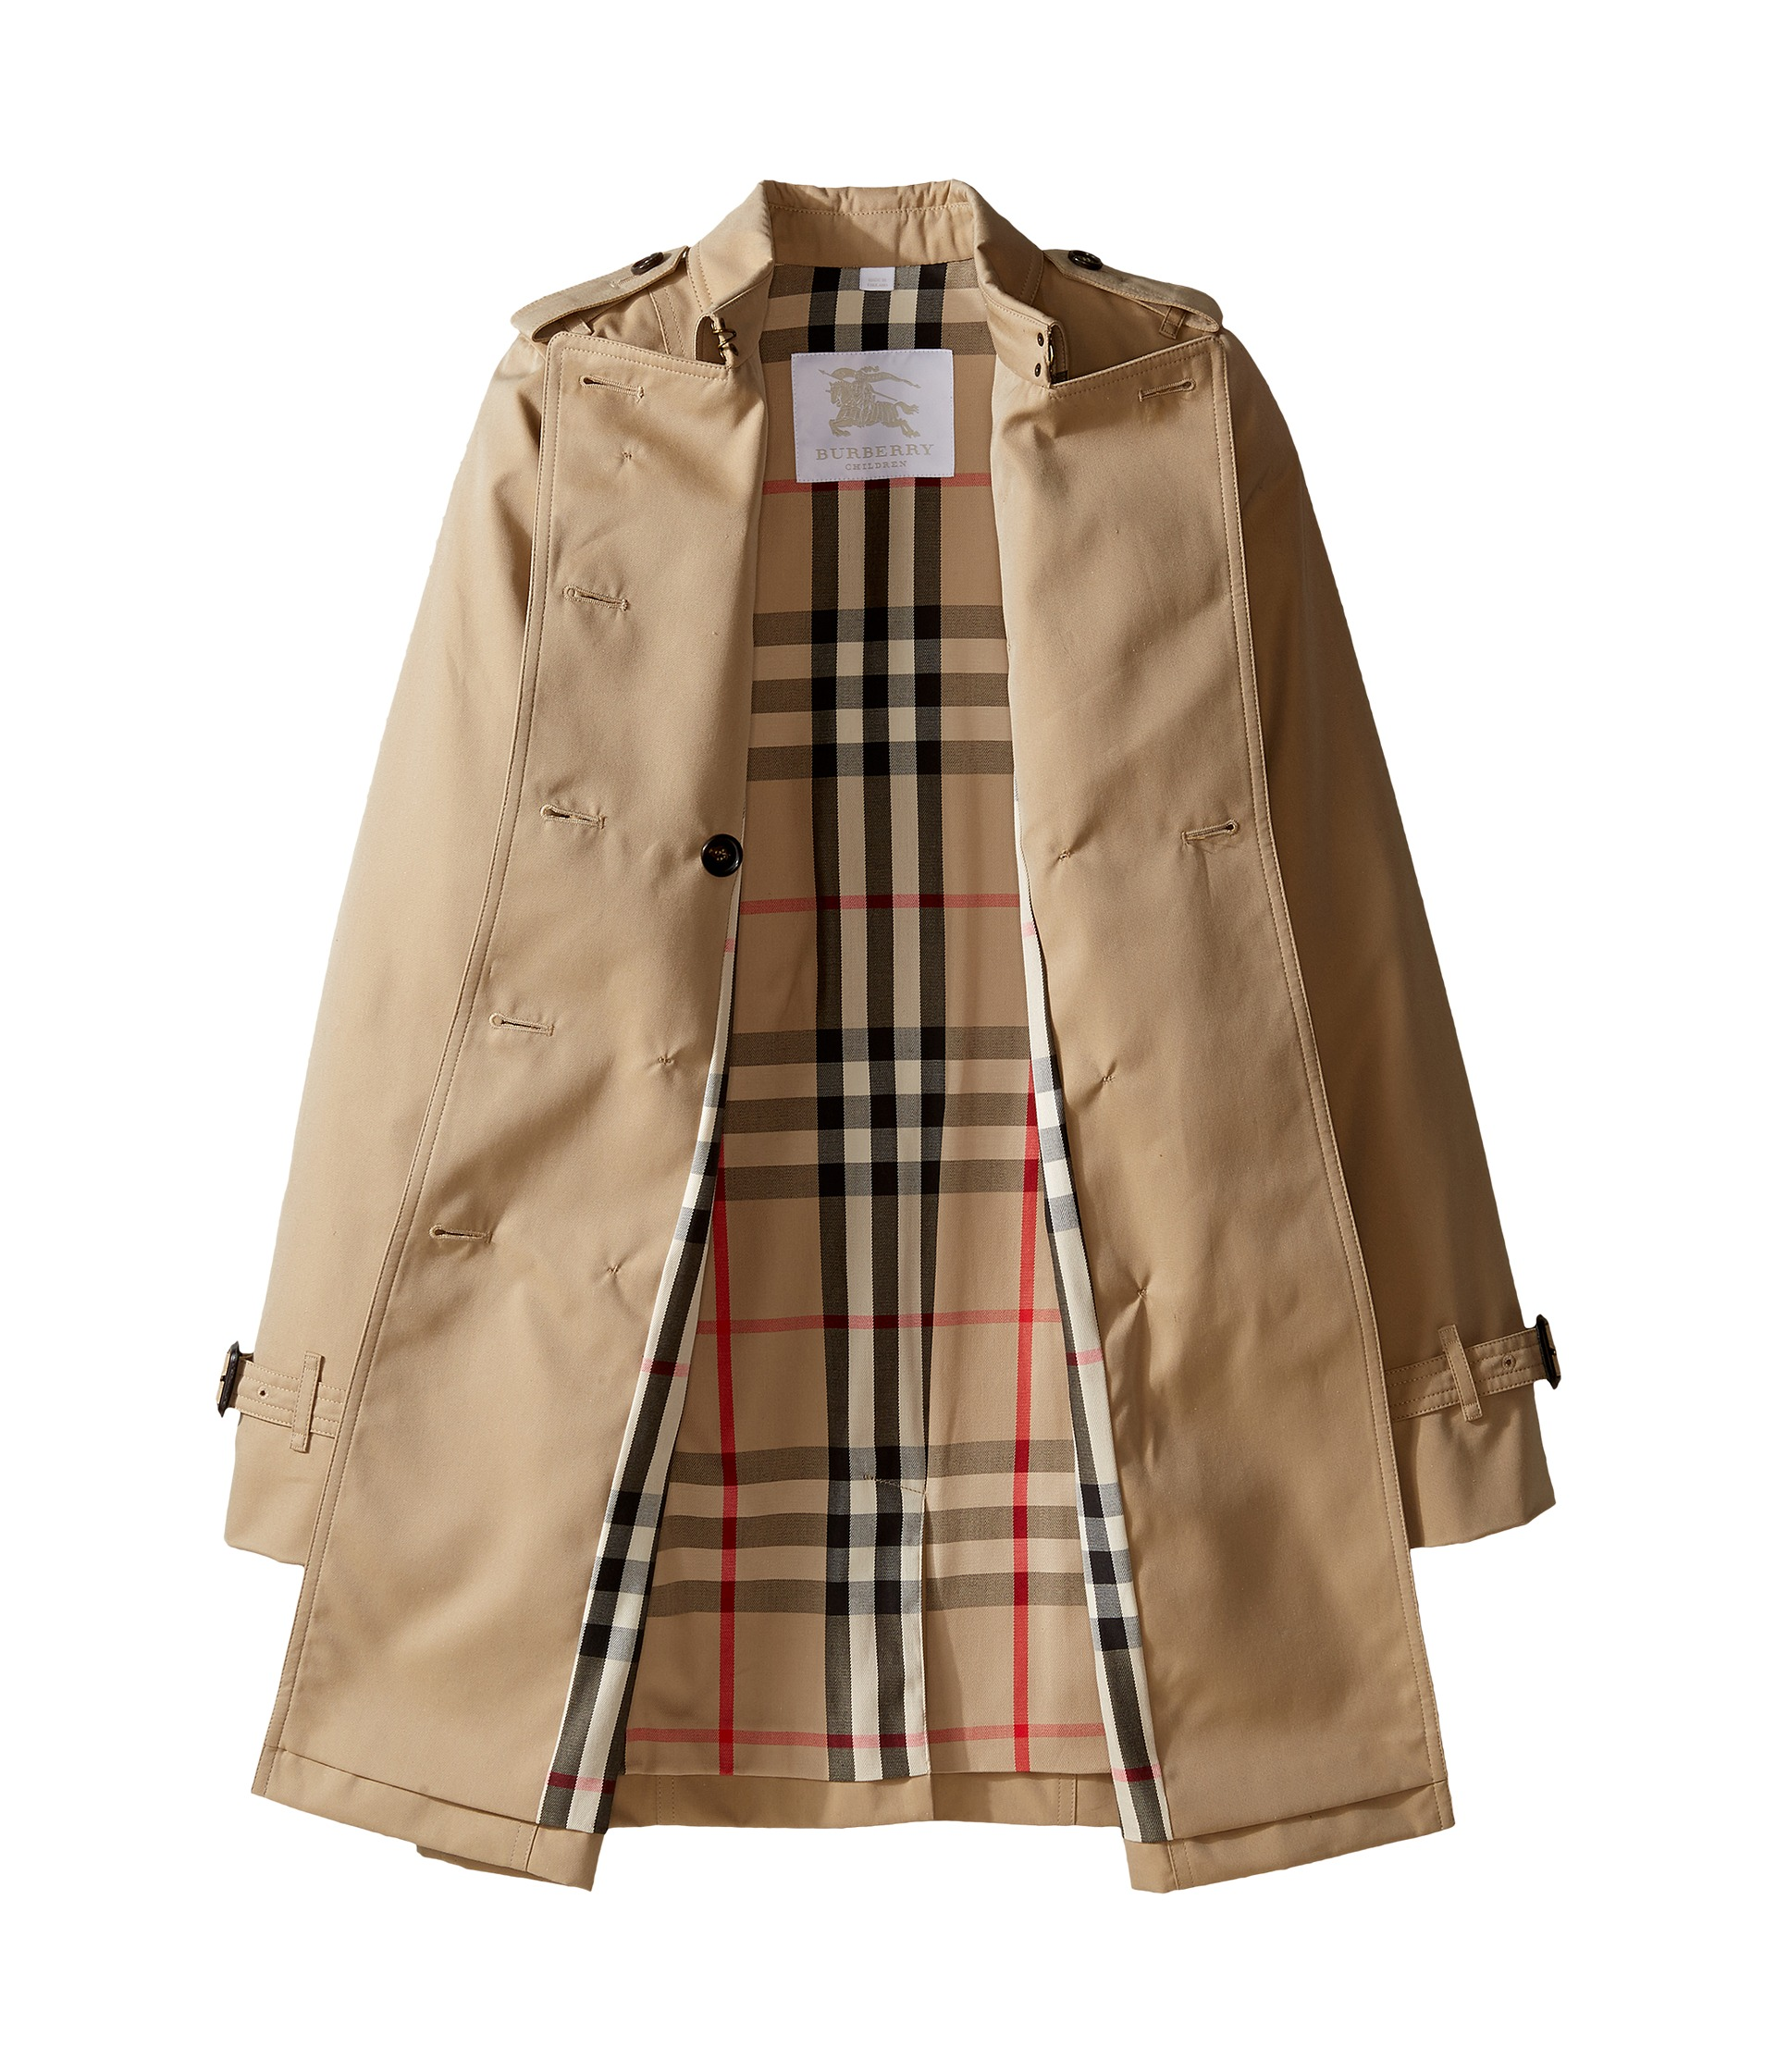 4b42cb79c657 Laminated Check Trench Coat Exclusive In Fluorescent Yellow. Gallery. The Burberry  Trench ...